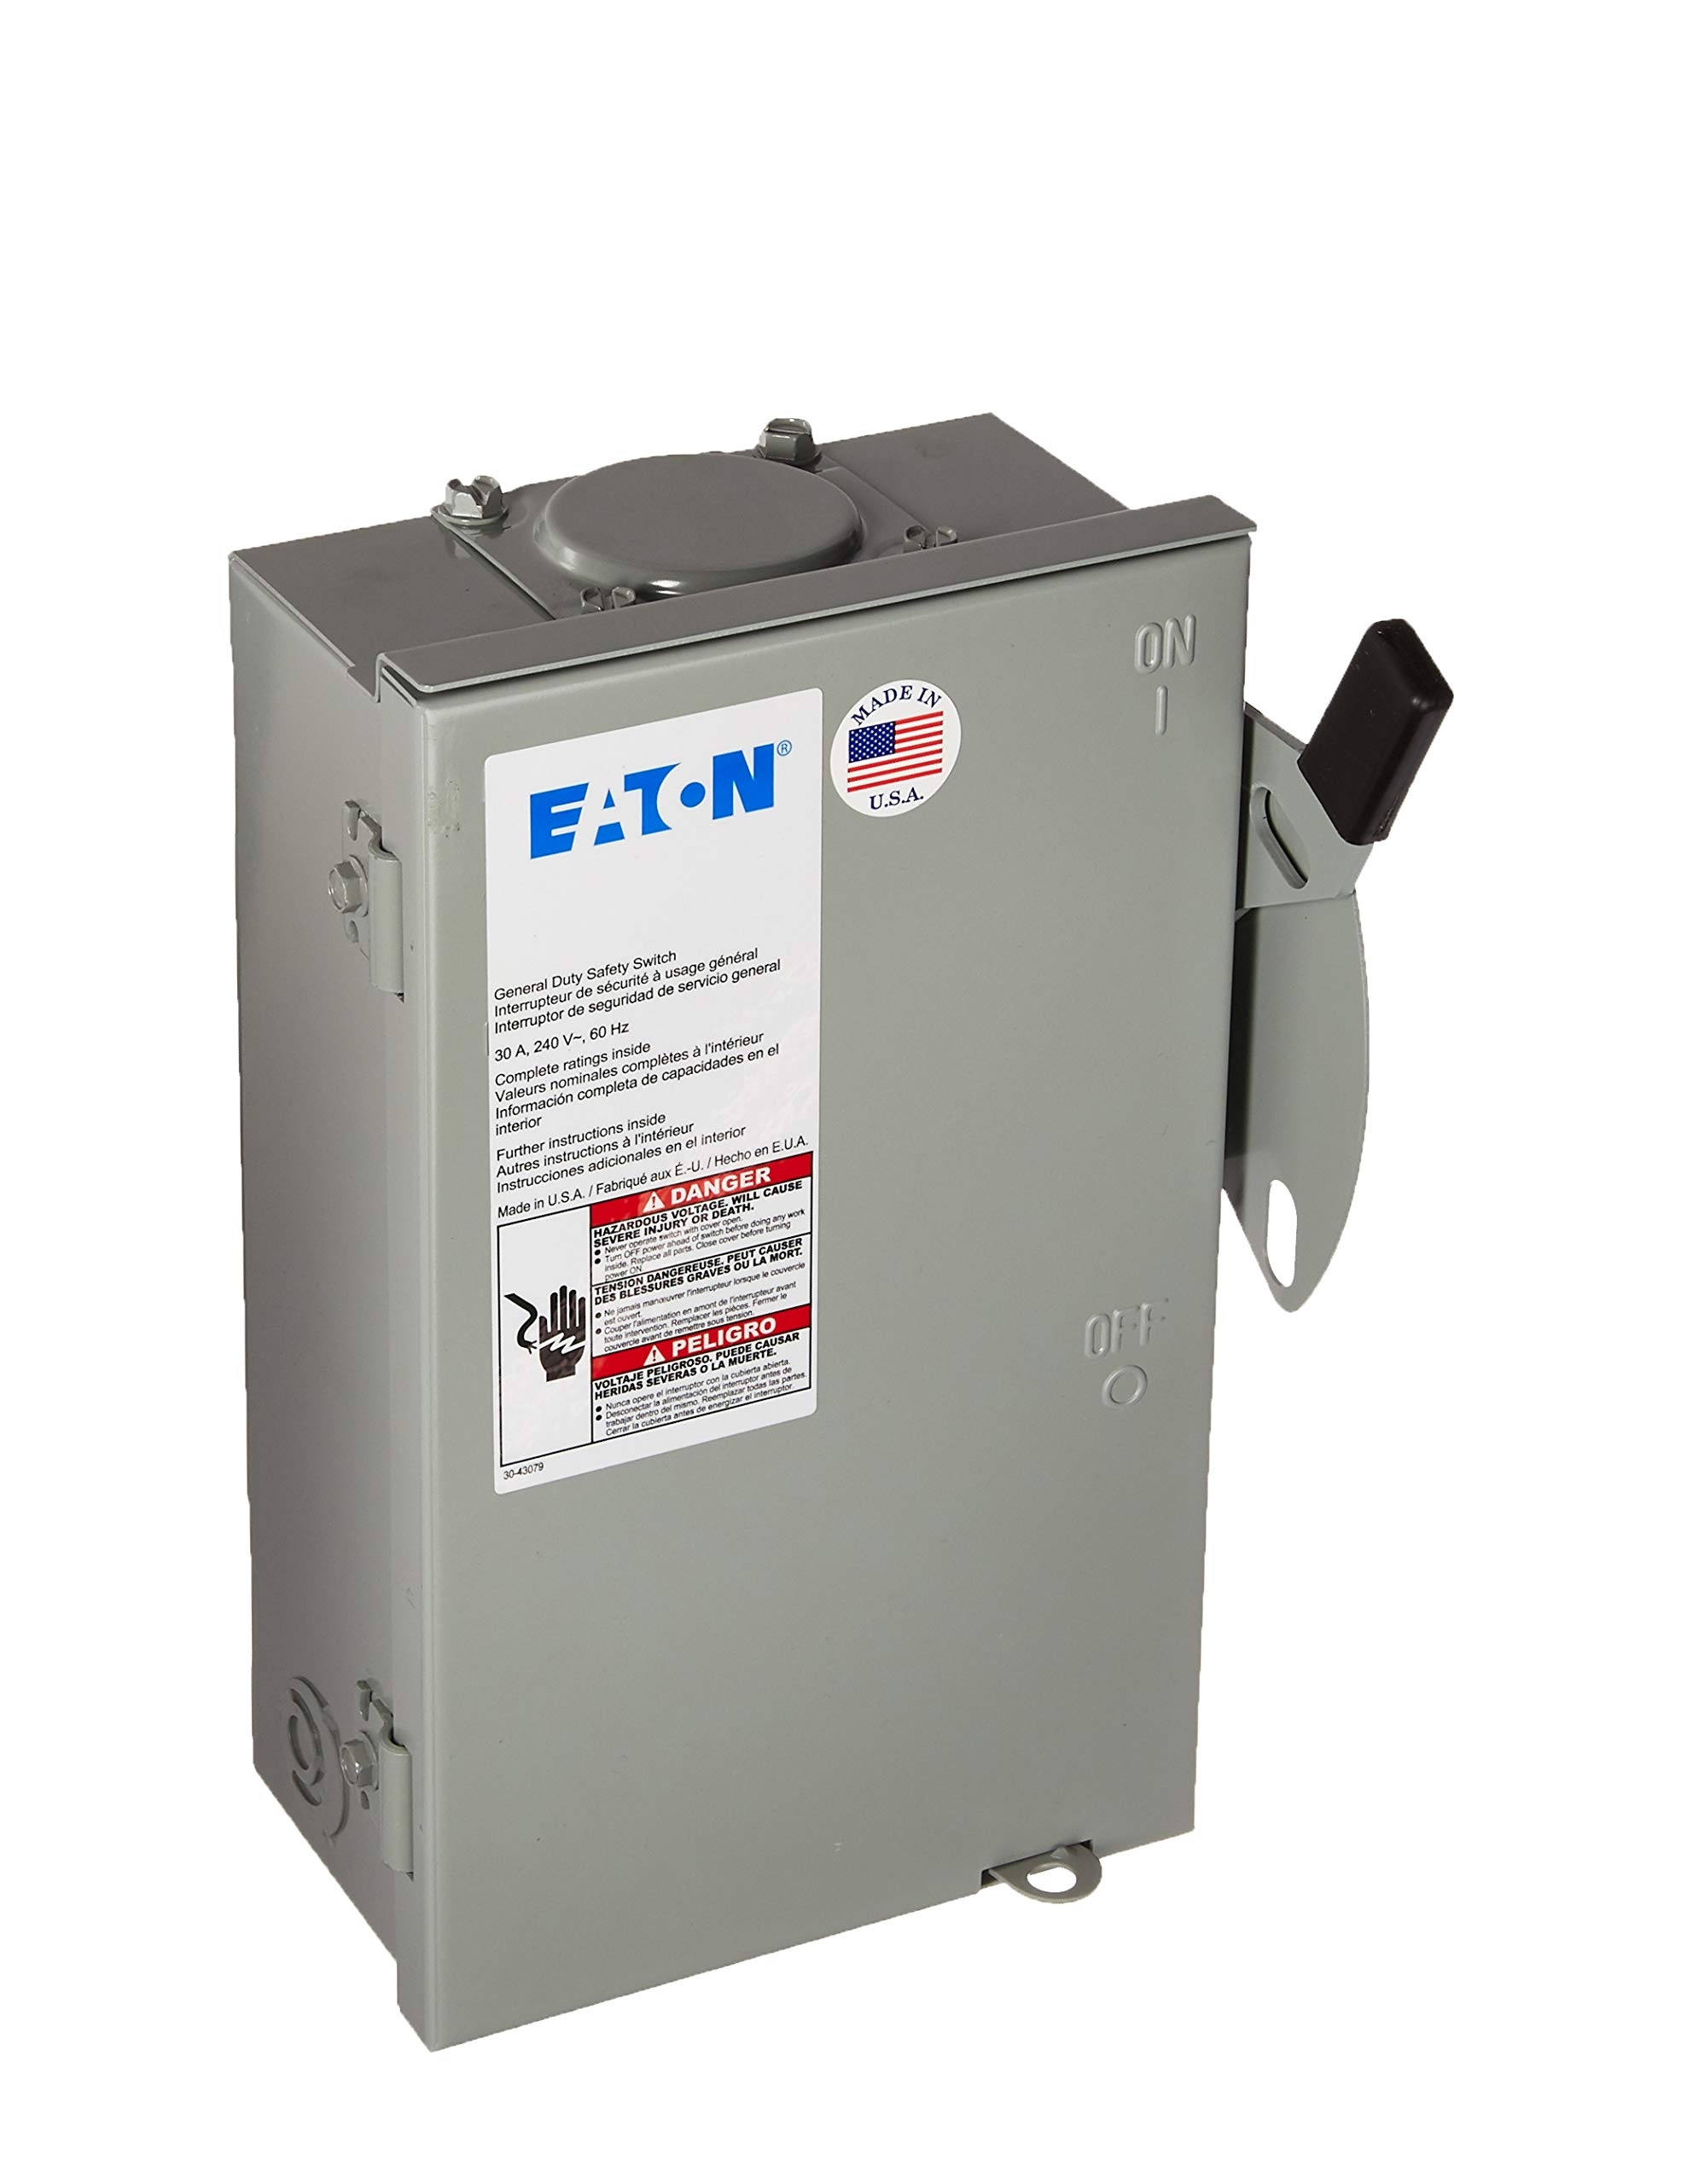 Eaton Corporation Dg221Nrb Outdoor Safety Switch, 120/240V, 30-Amp